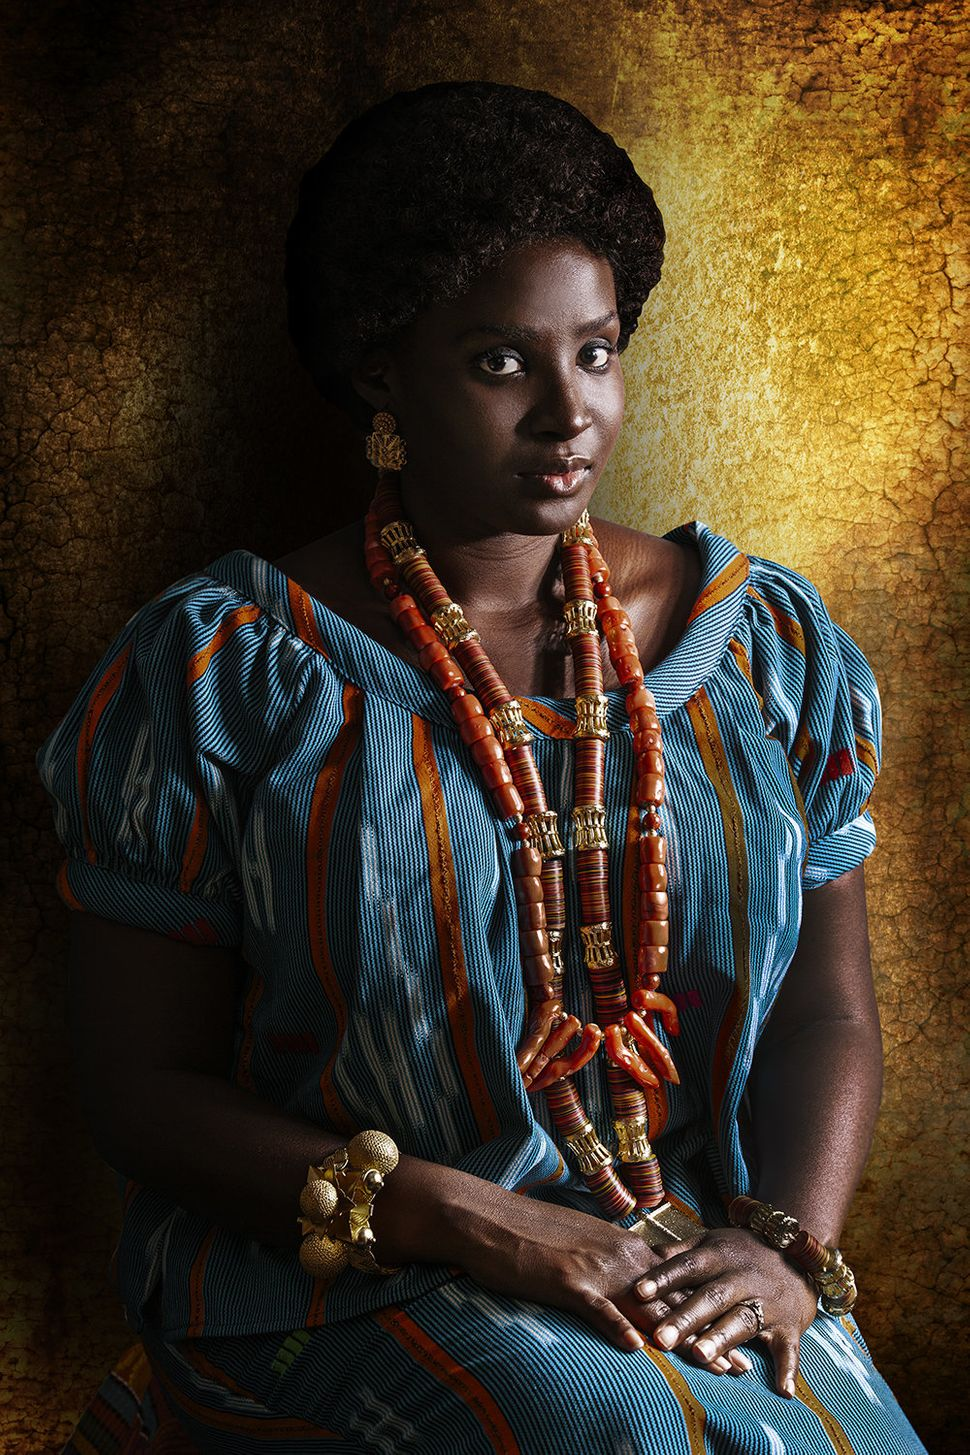 Sandrine Amah is a chemical engineer in cosmetics. She is from Akan. She spent herchildhood in Abidjan (Ivory Coast) an